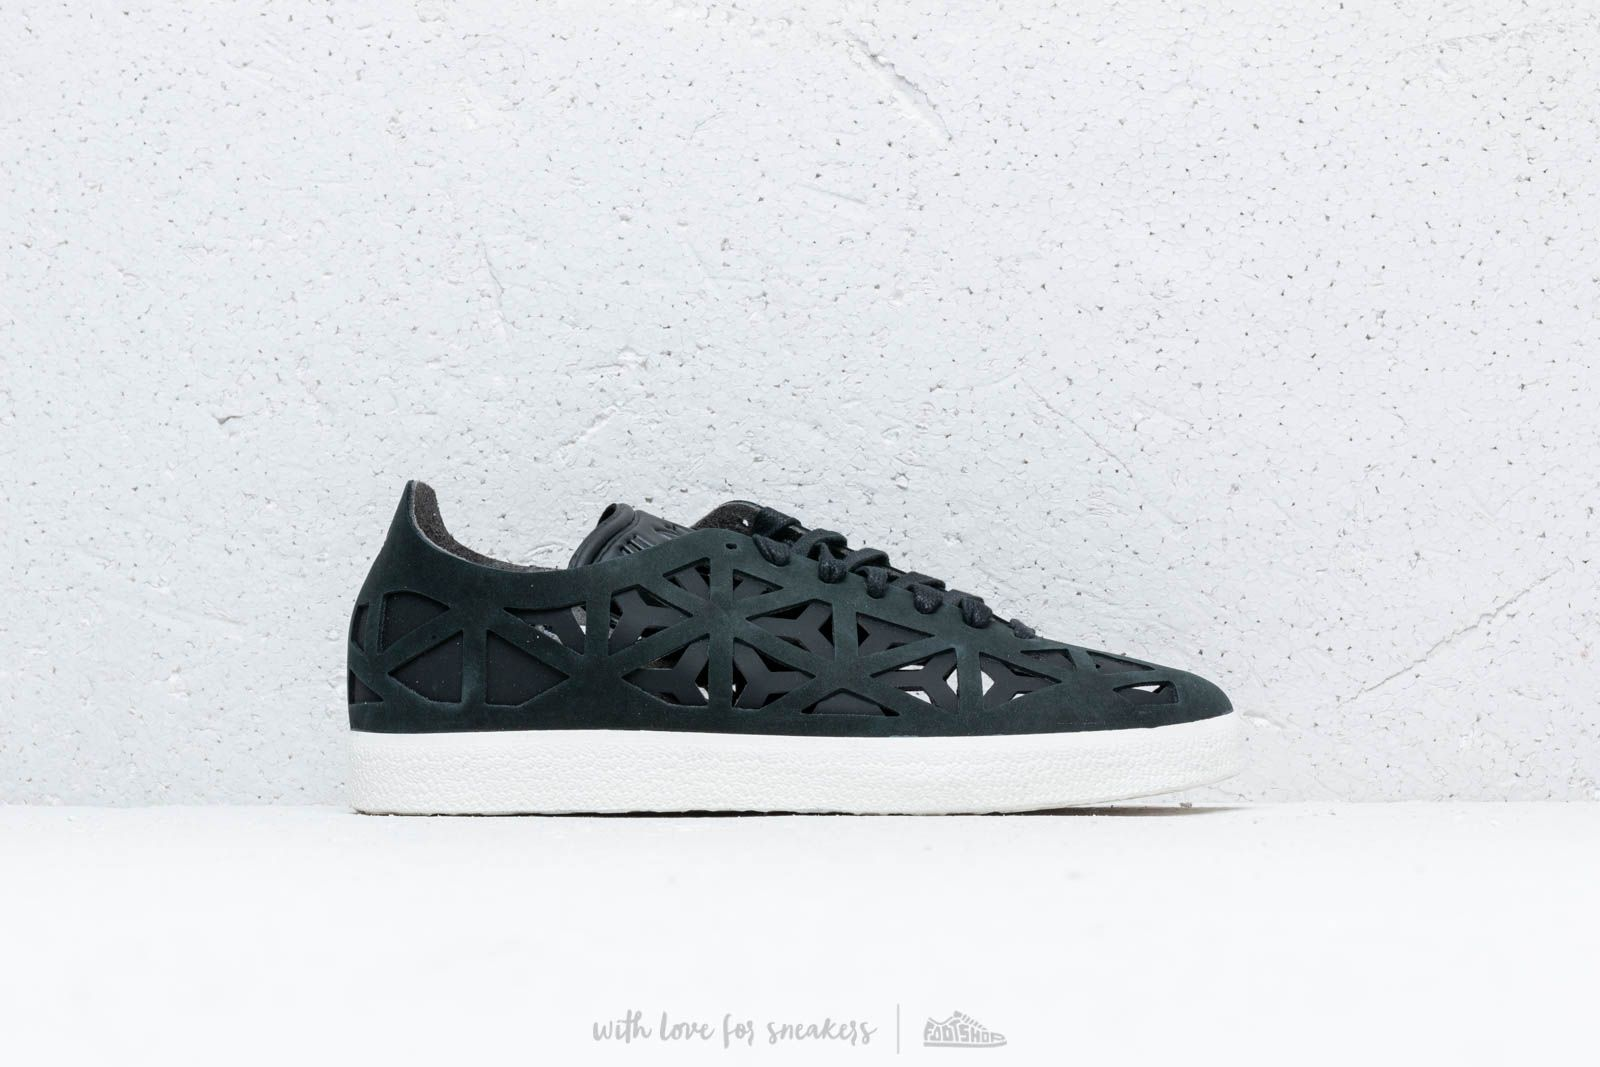 brand new 7c930 1cbe1 adidas Gazelle Cutout W Core Black Core Black Off White at a great price